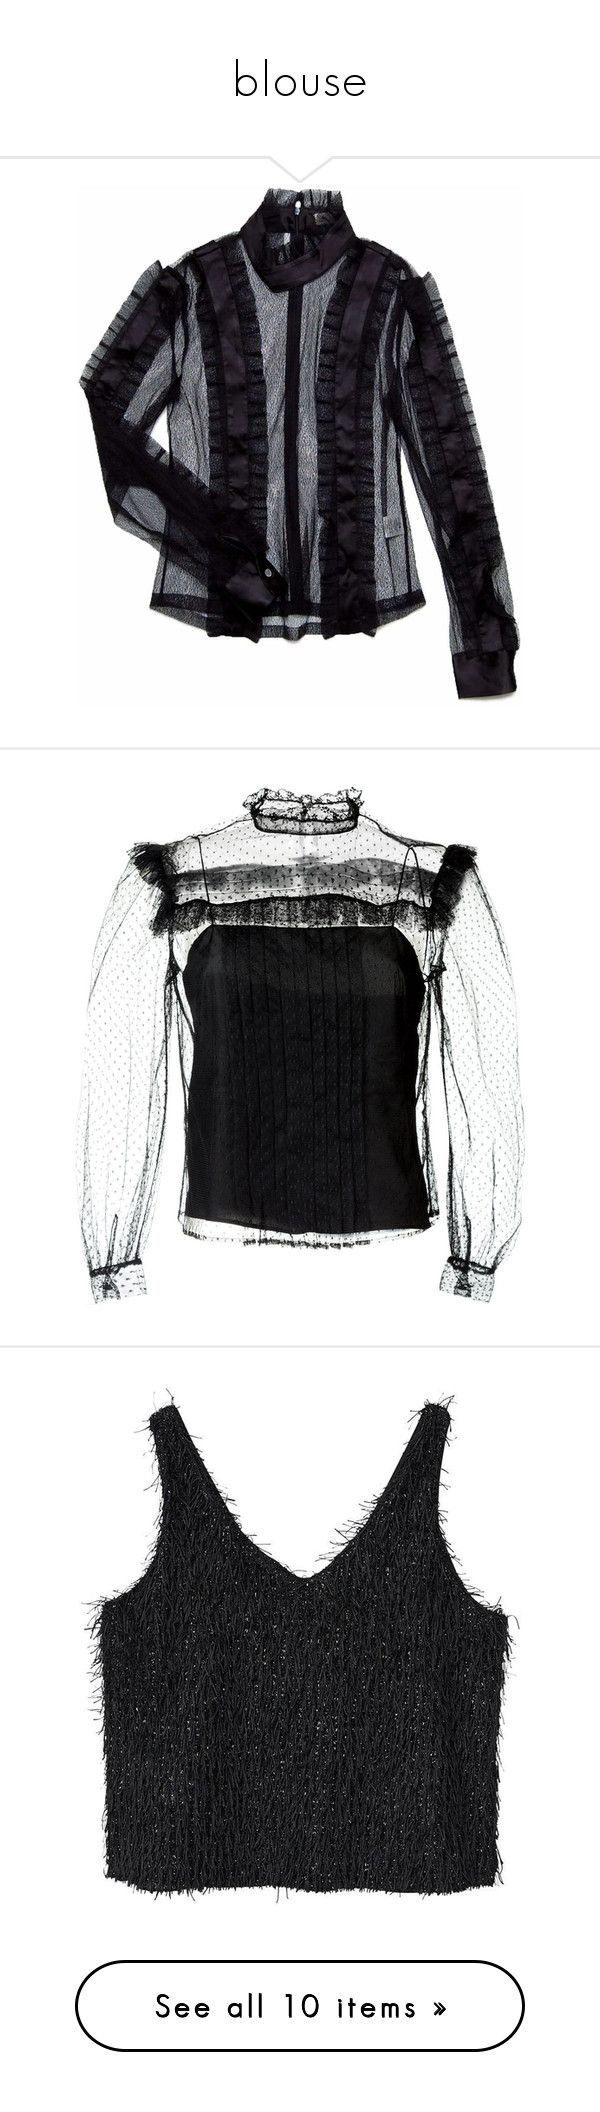 """""""blouse"""" by tinderella on Polyvore featuring tops, blouses, see through tops, flutter-sleeve top, sheer high neck top, see through blouse, flounce blouse, black, long sleeve tops and miu miu blouse"""